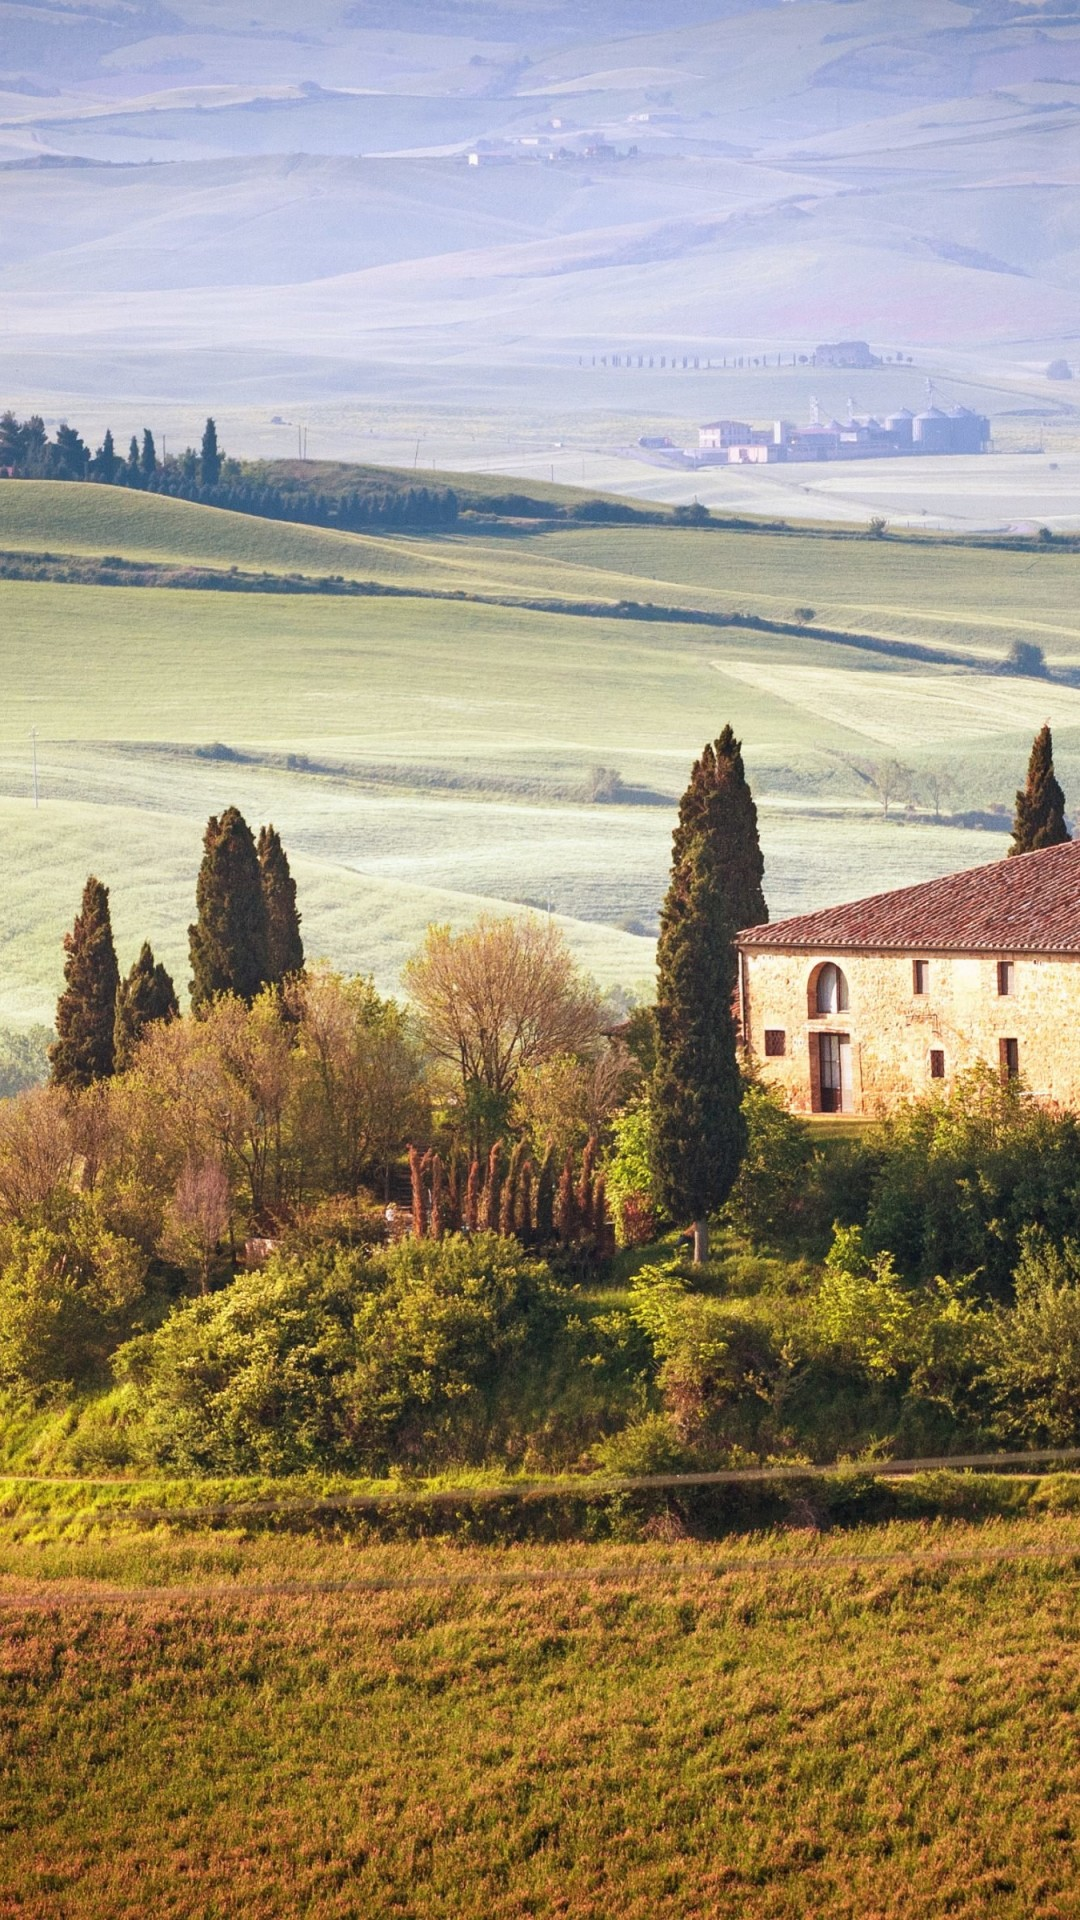 Summer in Tuscany, Italy Wallpaper for SAMSUNG Galaxy Note 3